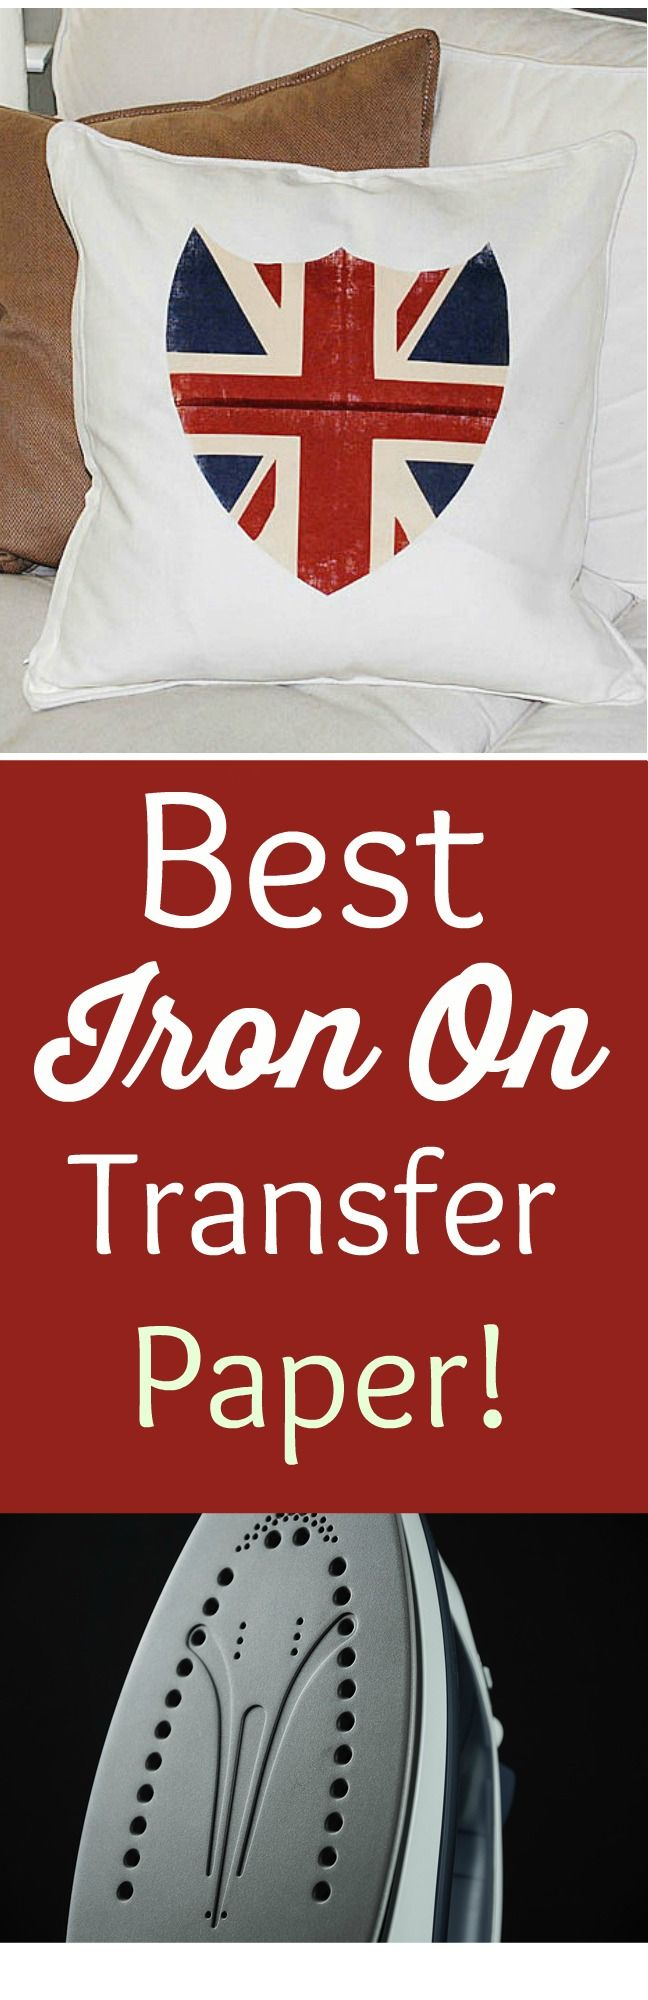 Best Iron On Transfer Paper! - Union Jack Shield Pillow Printable and Transfer Technique - The Graphics Fairy. I call this the Holy Grail of Iron On Transfer papers! Perfect for all of your DIY Decorating Projects and the finish and texture is far better than all the other brands!